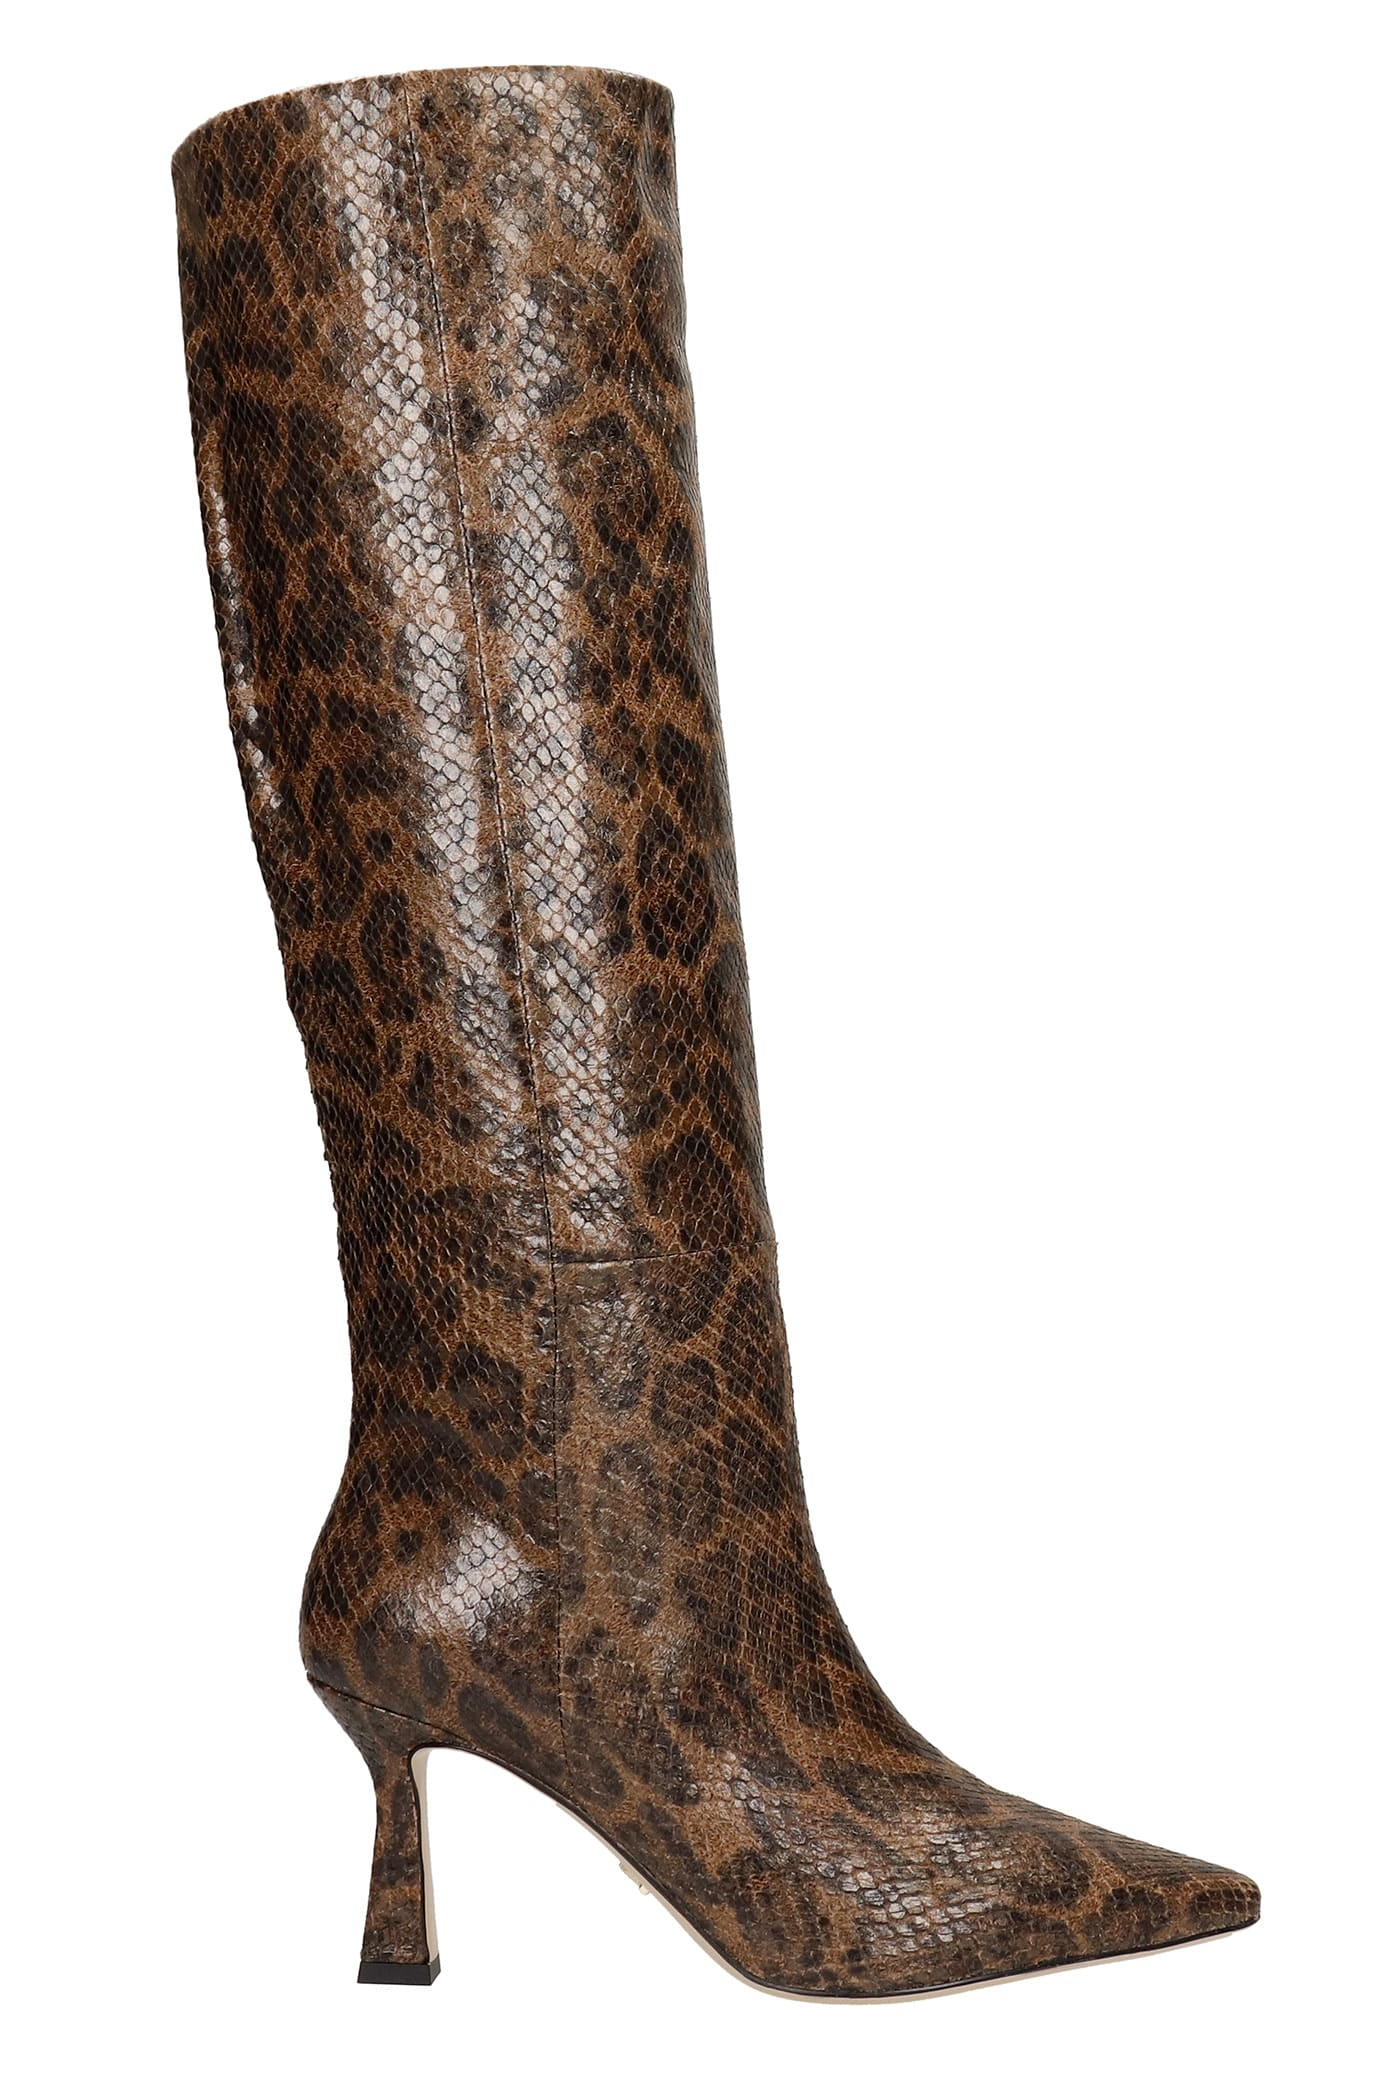 High Heels Boots In Brown Leather